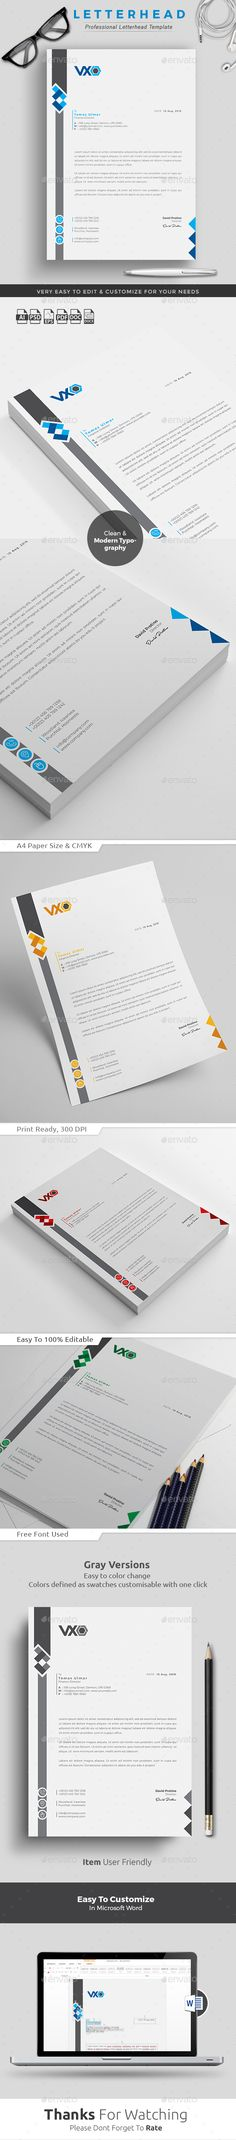 Letterhead Stationery Print TemplatesDownload here